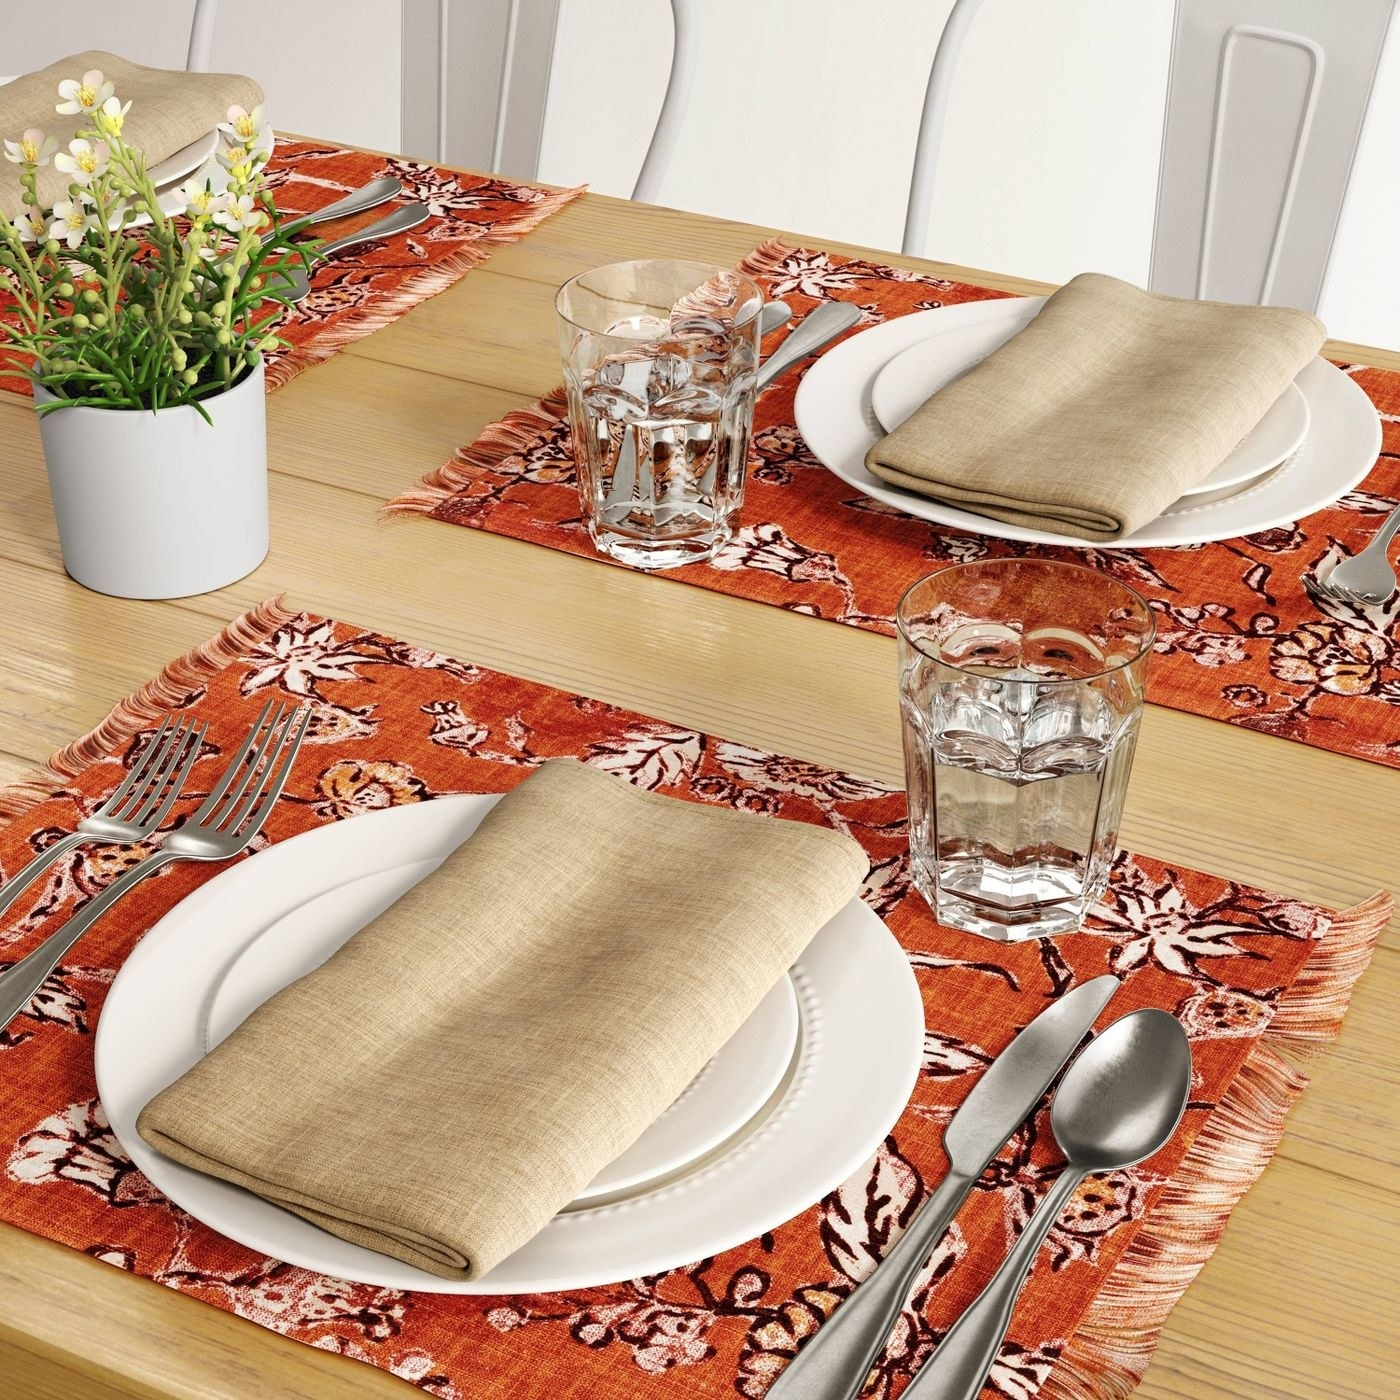 orange floral placemats with silverware and dinnerware on it